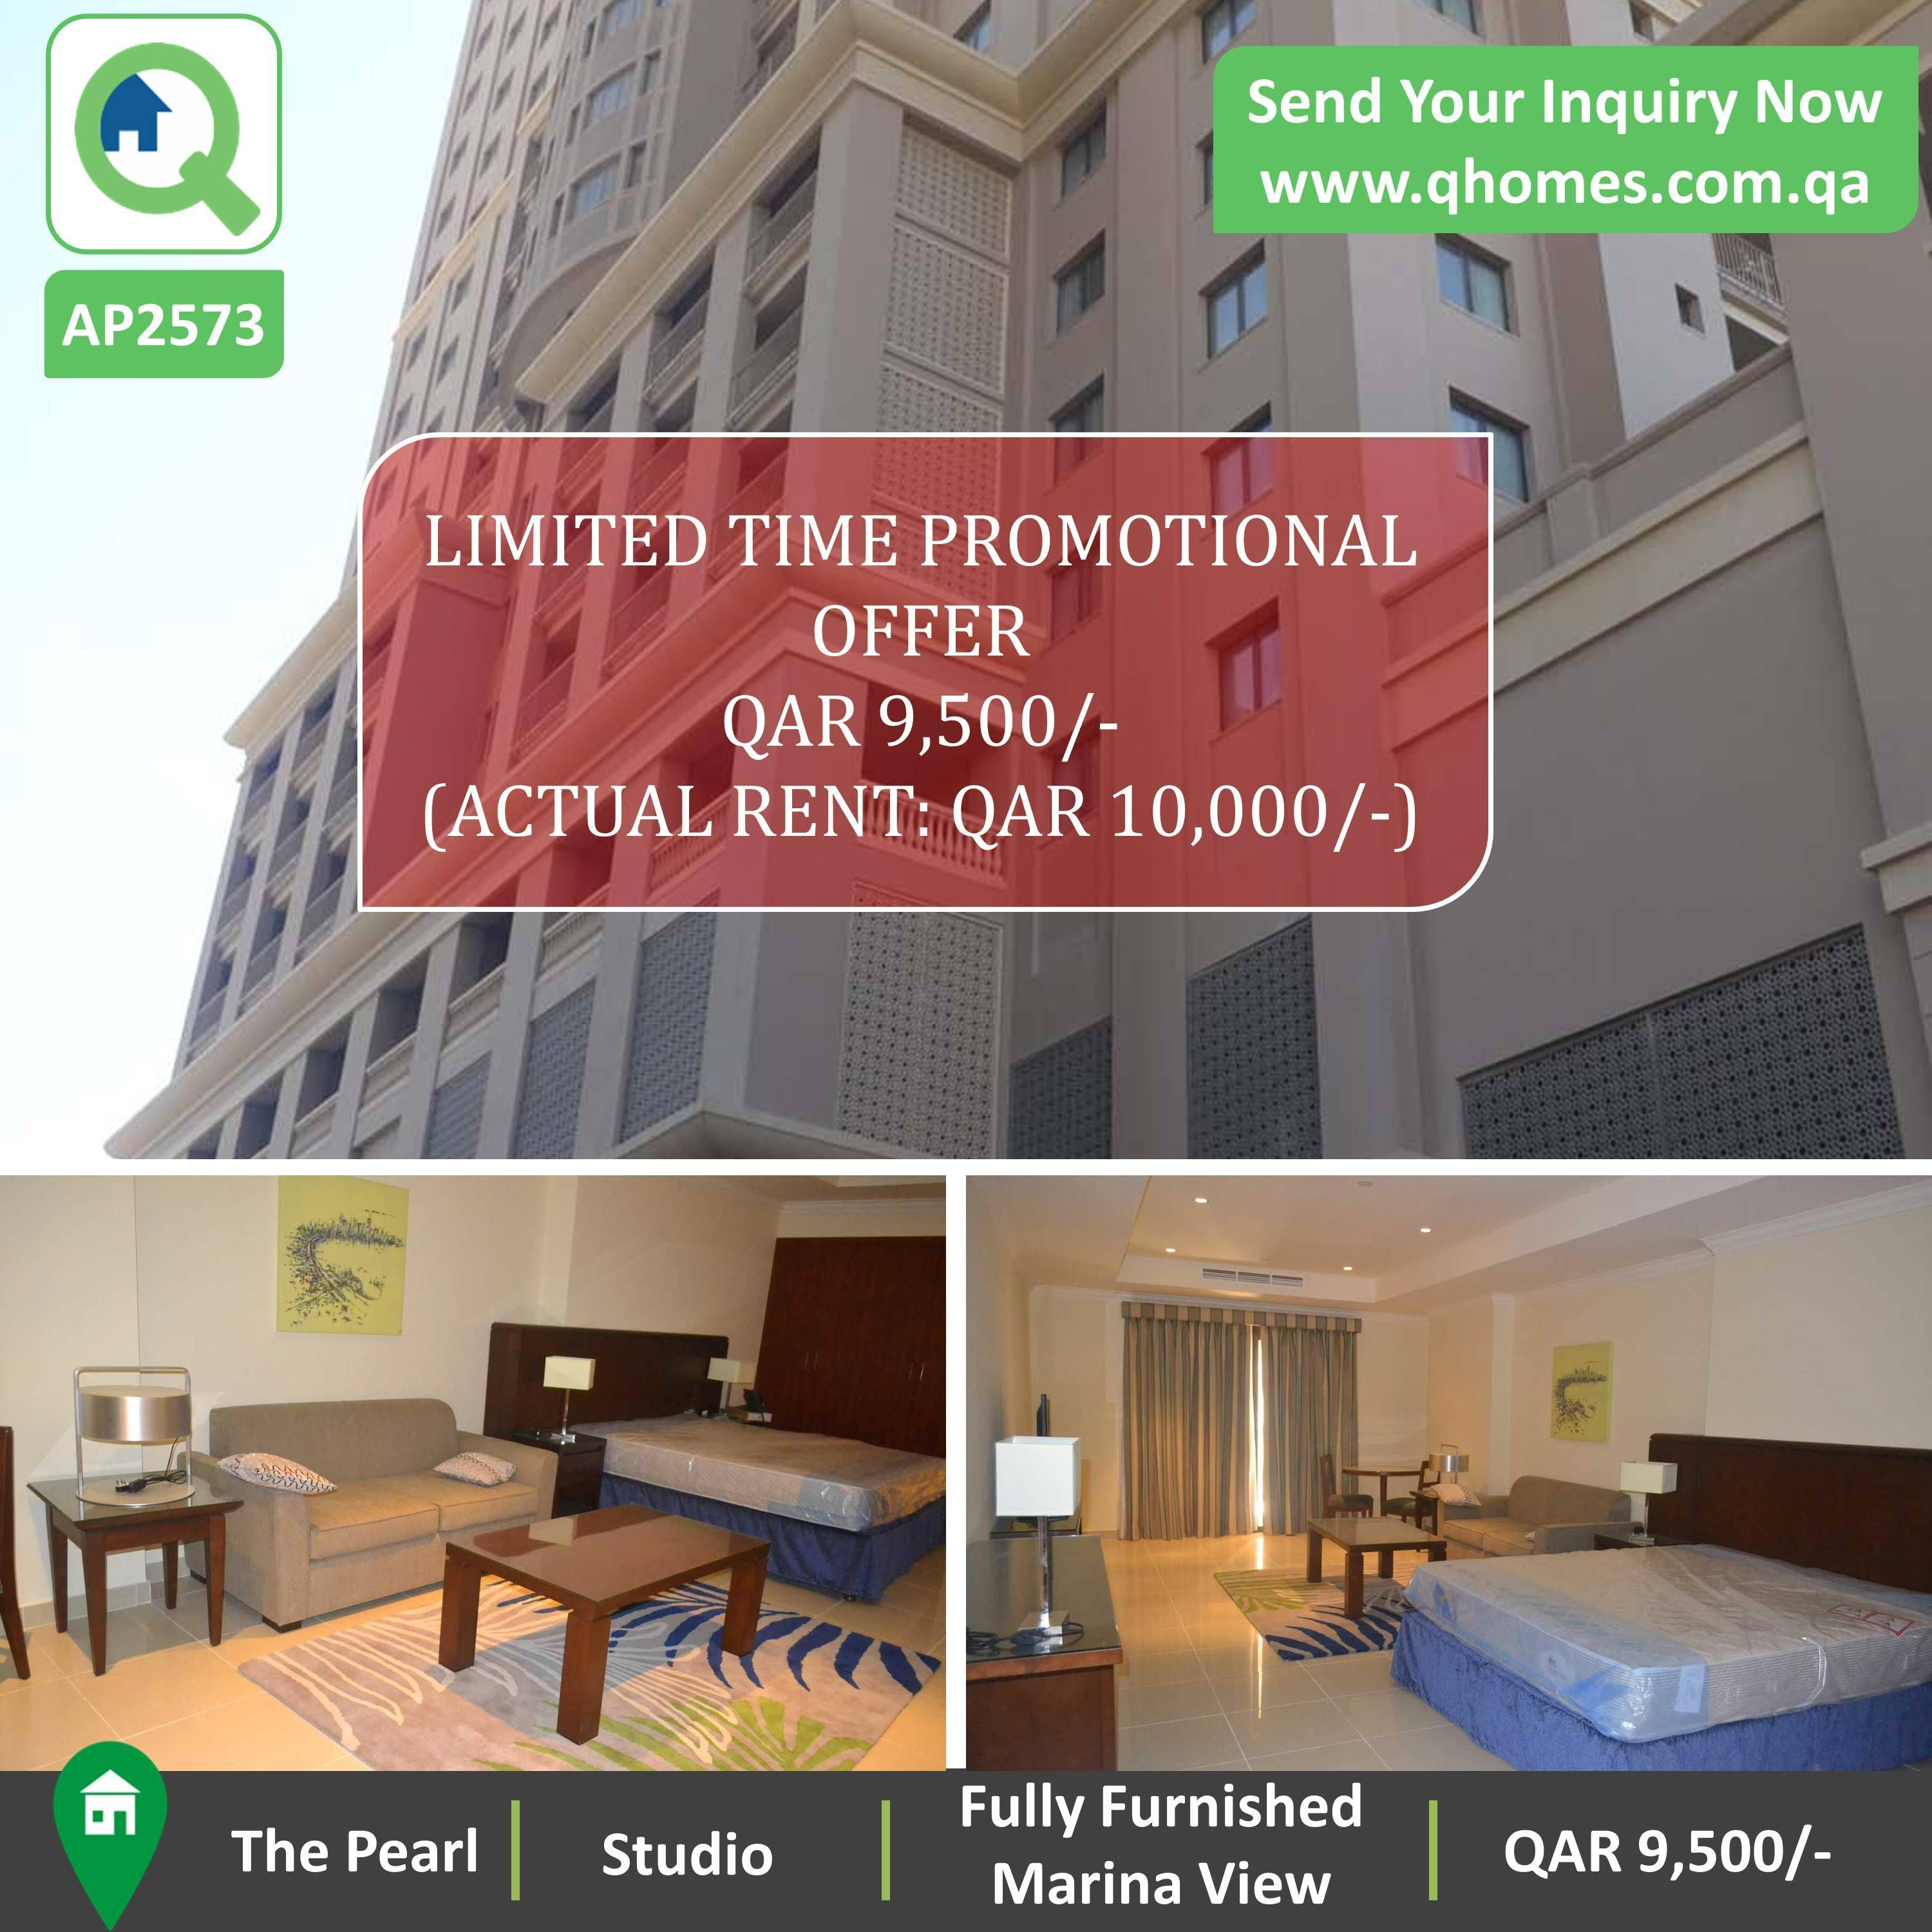 Real Estate Studio Apartments For Rent: Apartment For Rent In Pearl Qatar: Fully Furnished Studio